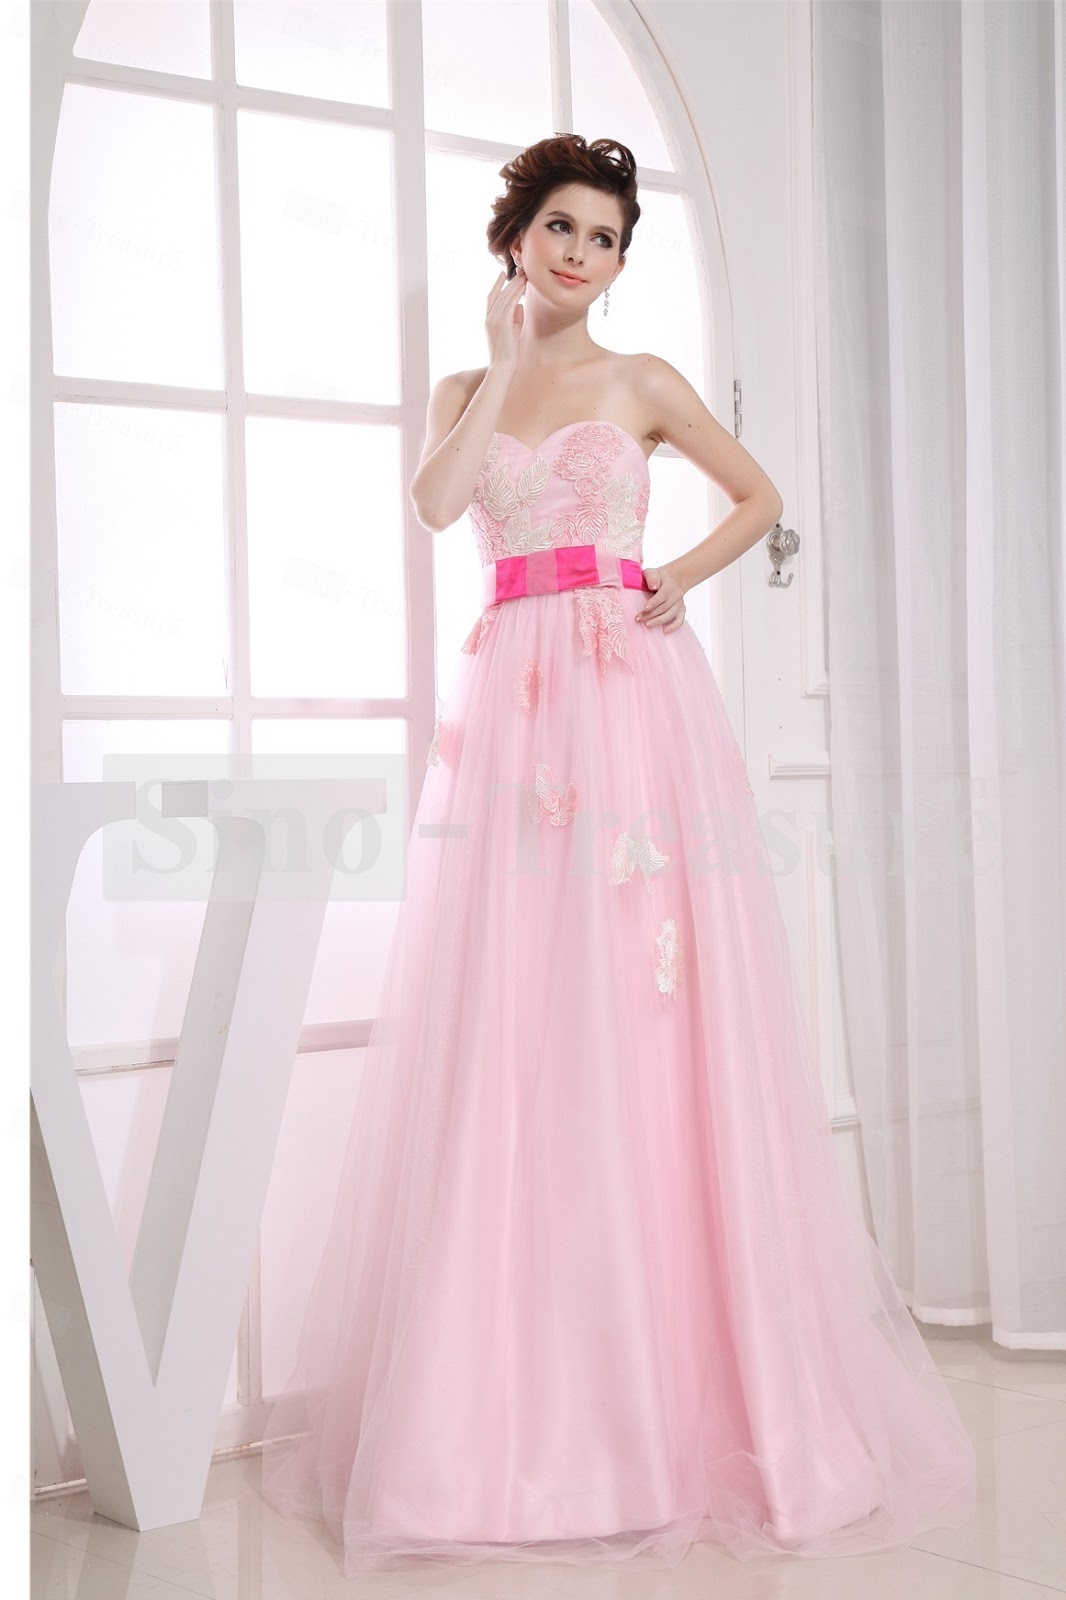 MEDIUM SHORT HAIRCUT: PROM DRESSES 2013: GET STYLES AND COLORS